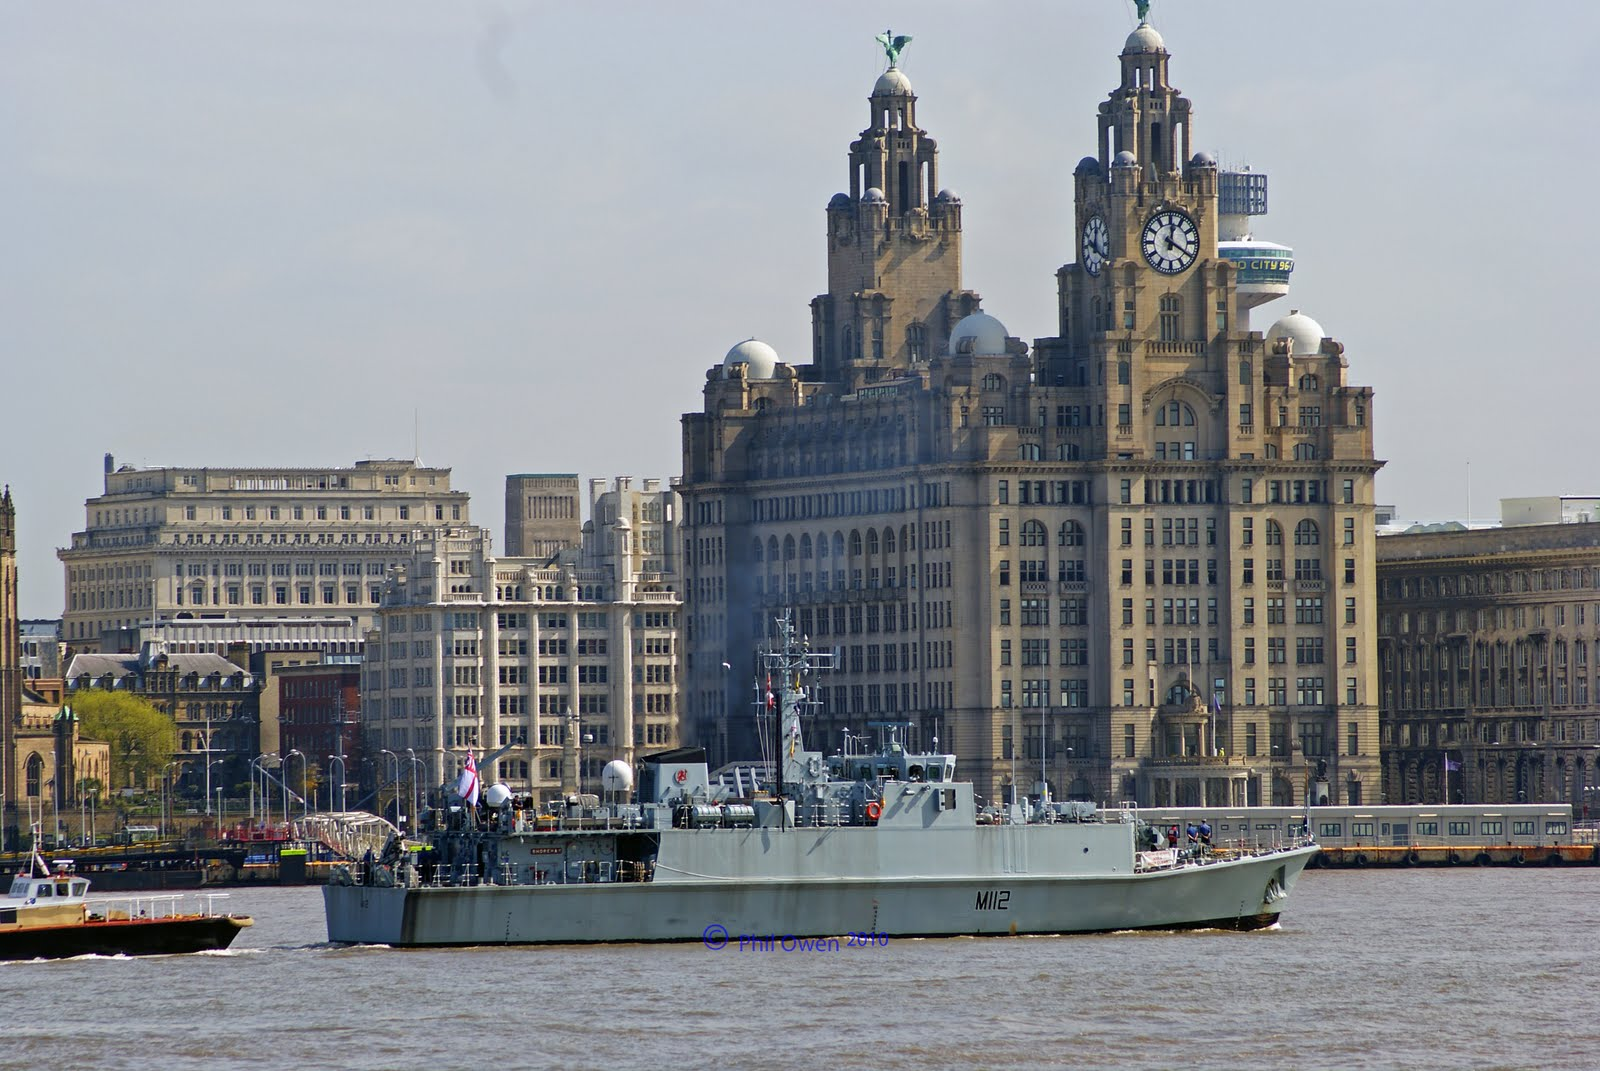 the river mersey The mersey is a famous river in liverpool, england, a city in which the beatles began their musical career but this song was begun by another group of merseyside musicians called gerry and the pacemakers.